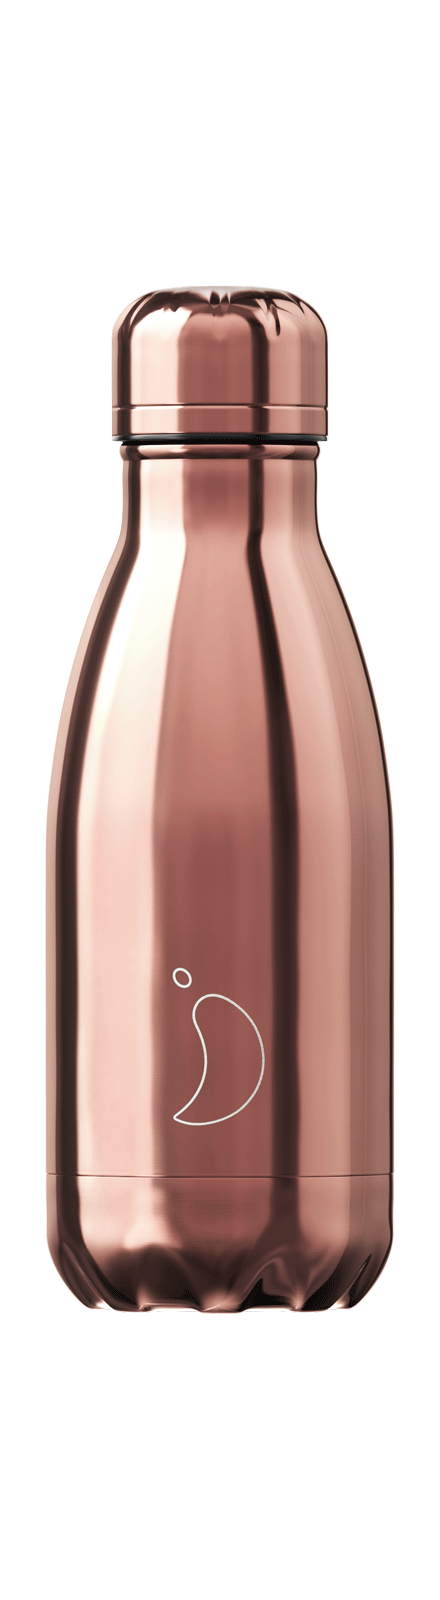 cadeauxwells - 260ml Chilly's Bottles - Chrome Rose Gold - Chilly's Bottles - Homewares